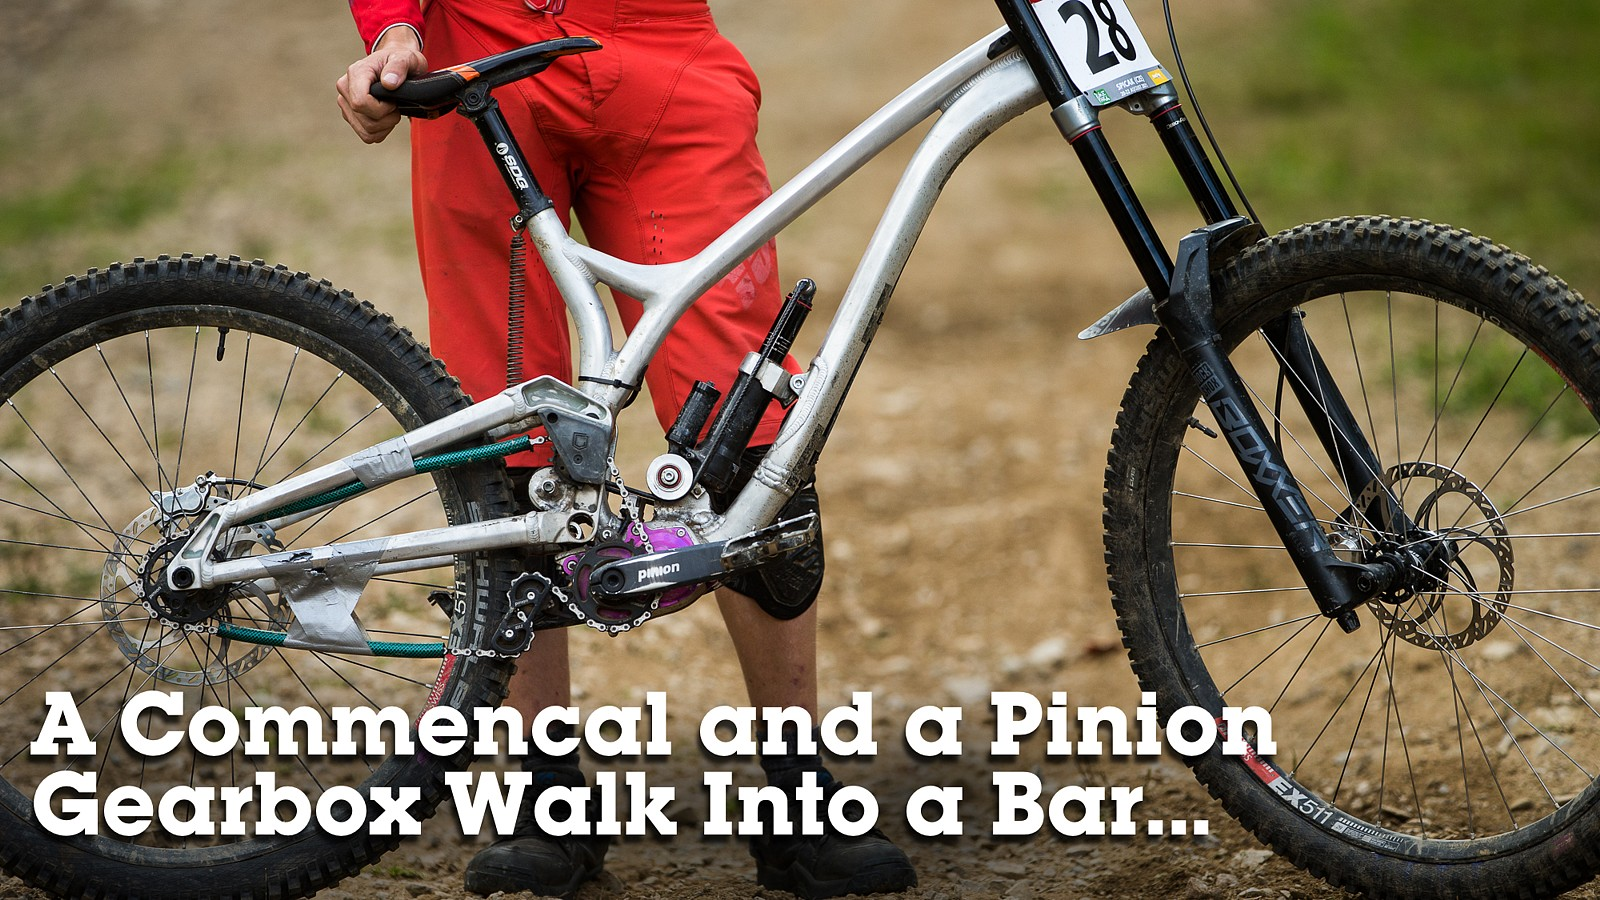 DIY Commencal Supreme DH with Pinion Gearbox - A Commencal and a Gearbox Walk Into a Bar - Mountain Biking Pictures - Vital MTB